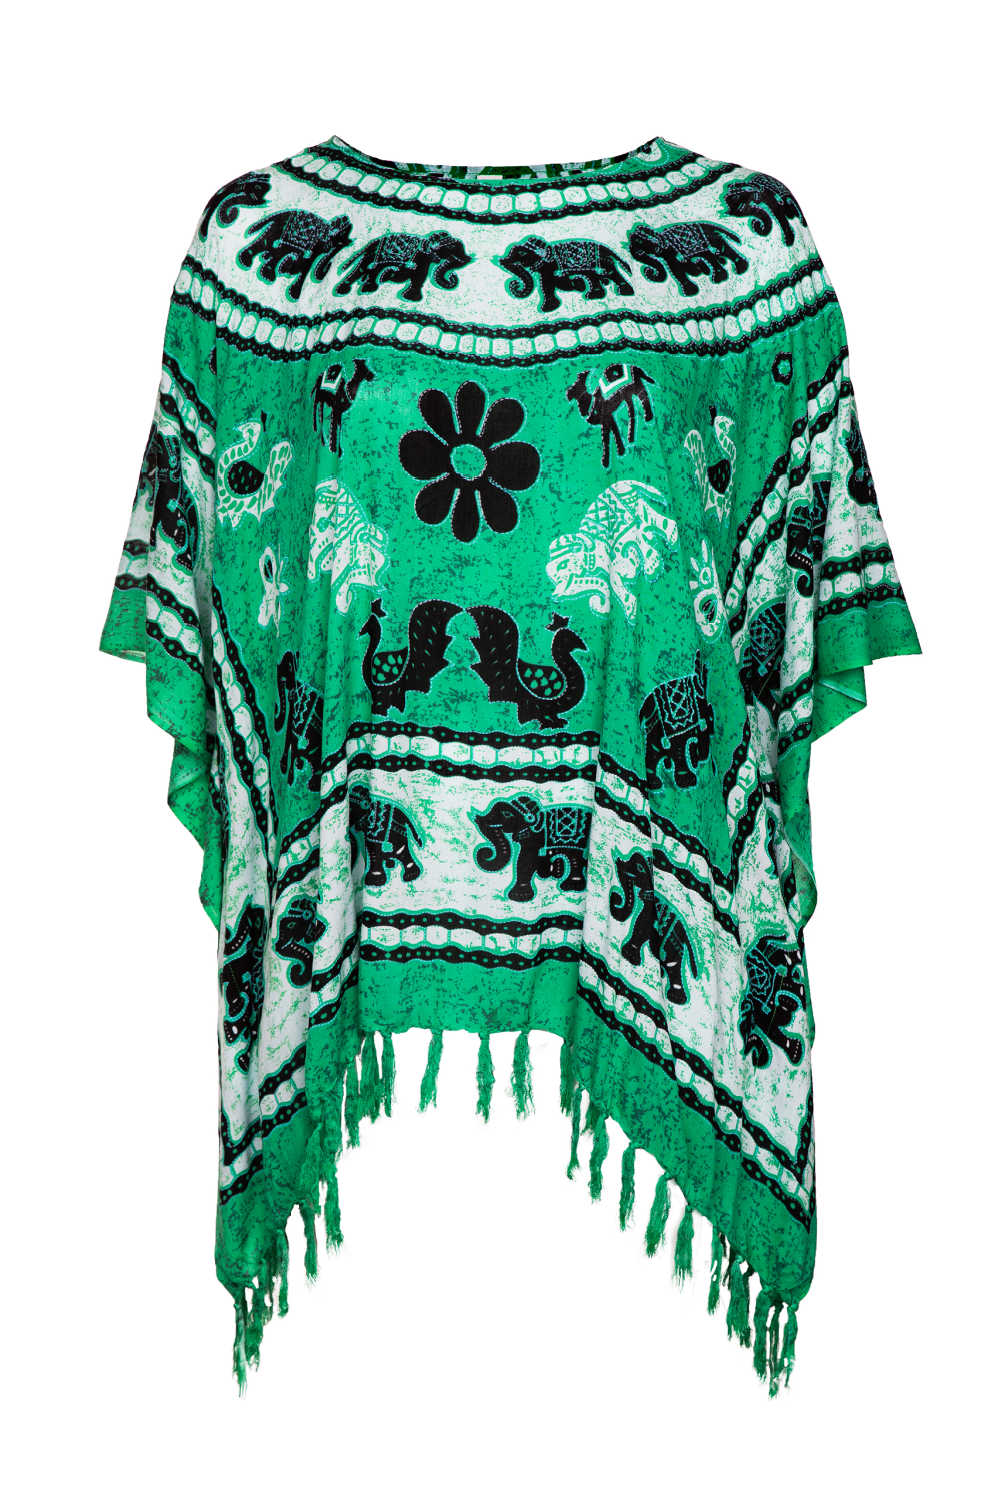 plus-size-beach-kaftan-elephant-mandala-emerald-green-black-white